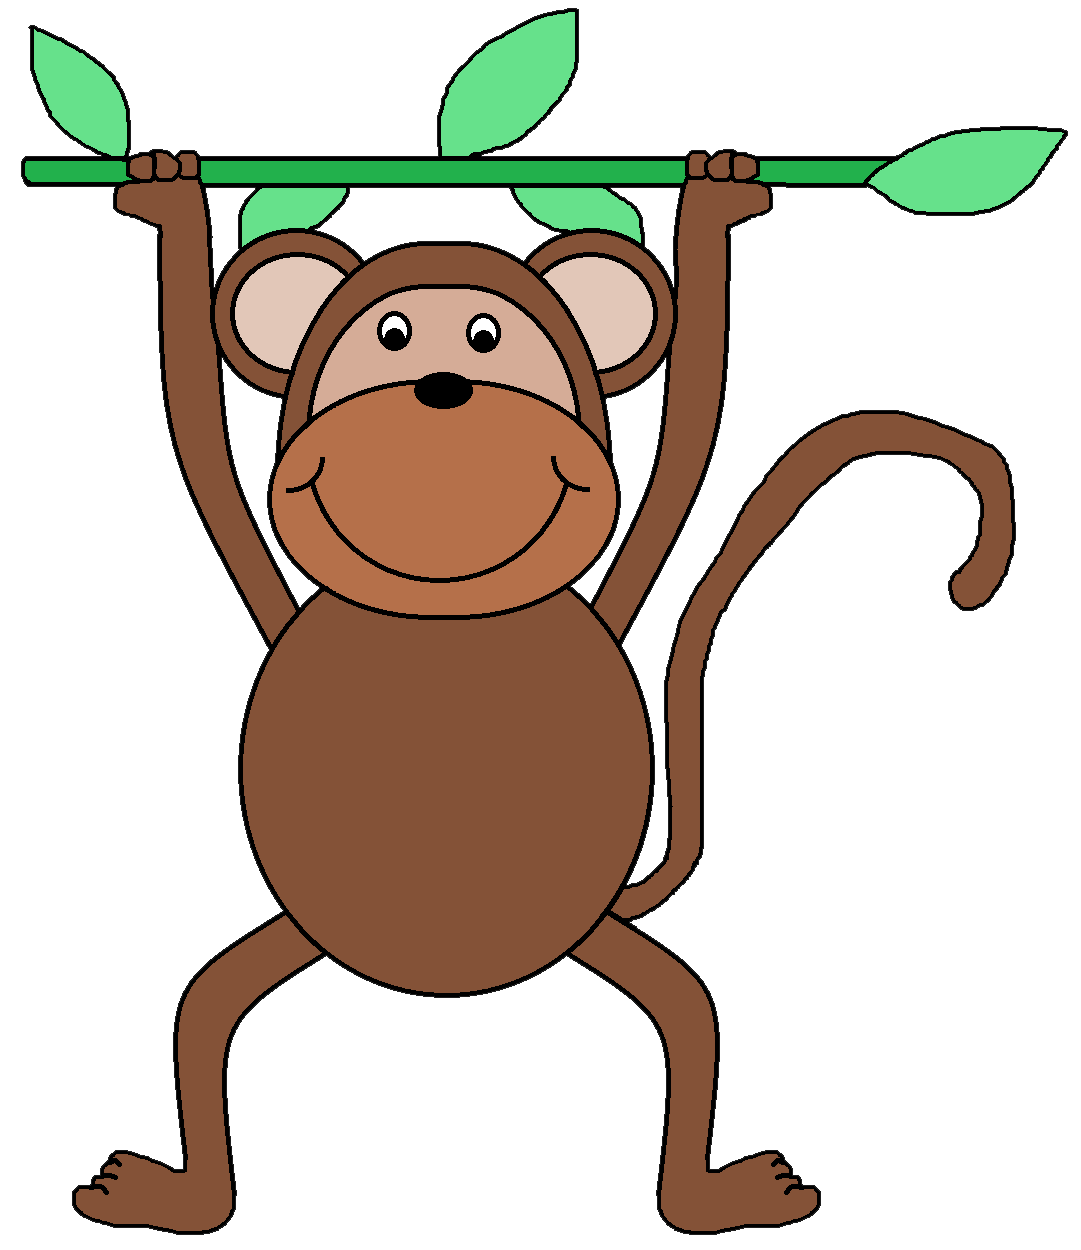 Monkeys clipart valentines, Monkeys valentines Transparent.